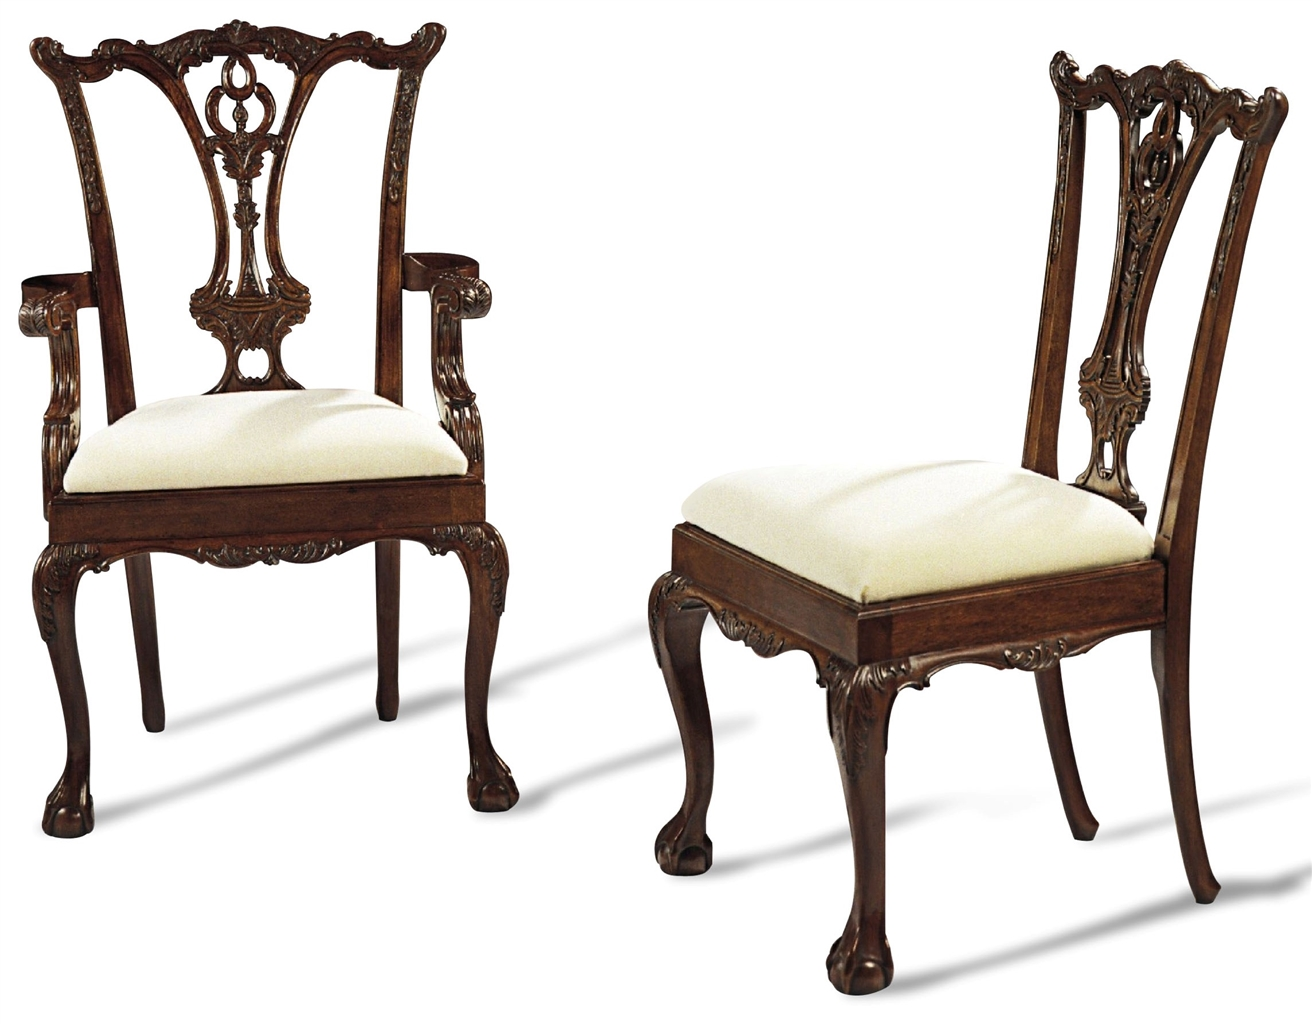 Ball and claw foot dining chairs wooden dining chairs for Dining furniture